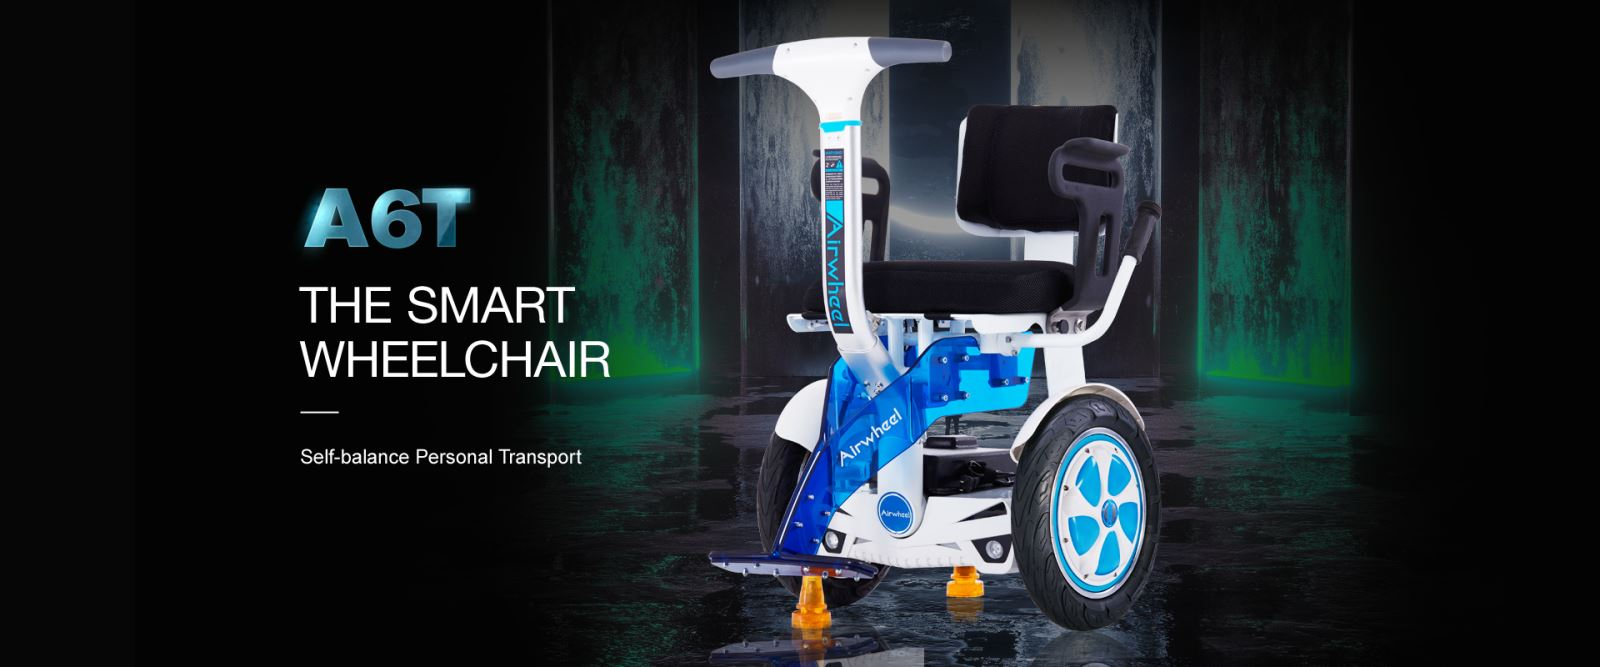 Airwheel A6T WHEELCHAIR LIFT AND MOBILITY AIDS